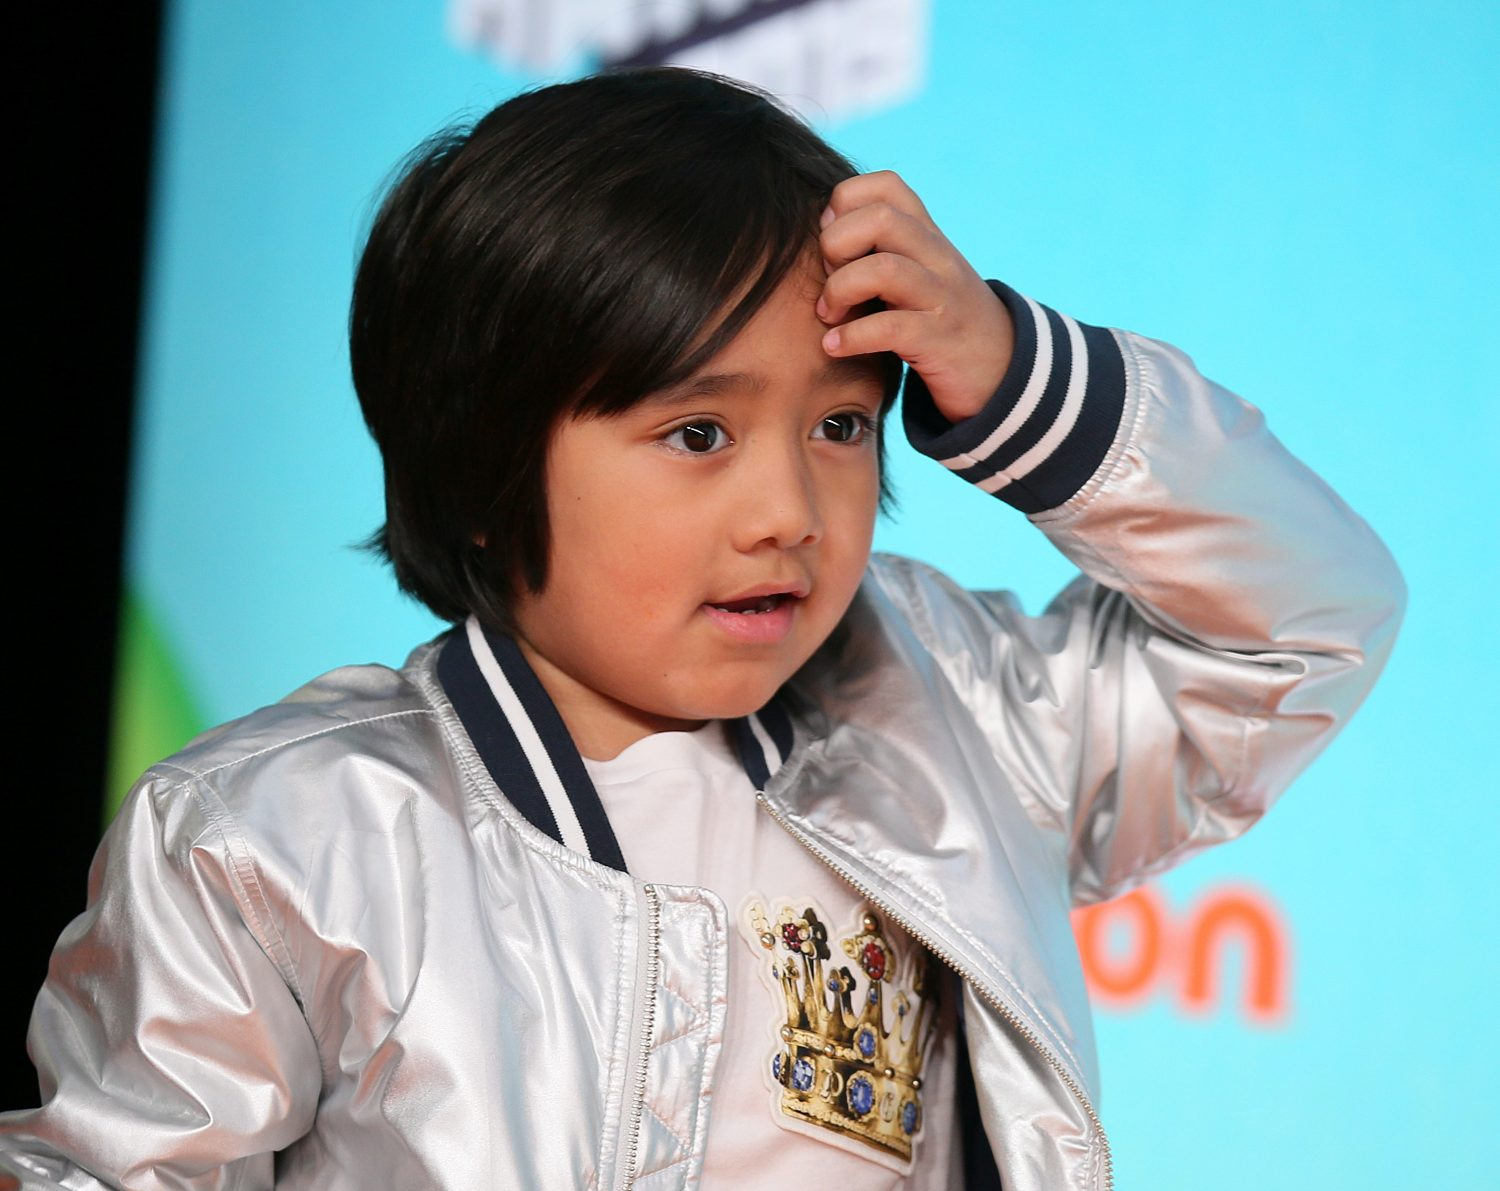 FILE PHOTO: 2019 Kids Choice Awards – Arrivals – Los Angeles, California, U.S., March 23, 2019 – YouTube star Ryan ToysReview. REUTERS/Danny Moloshok/File Photo